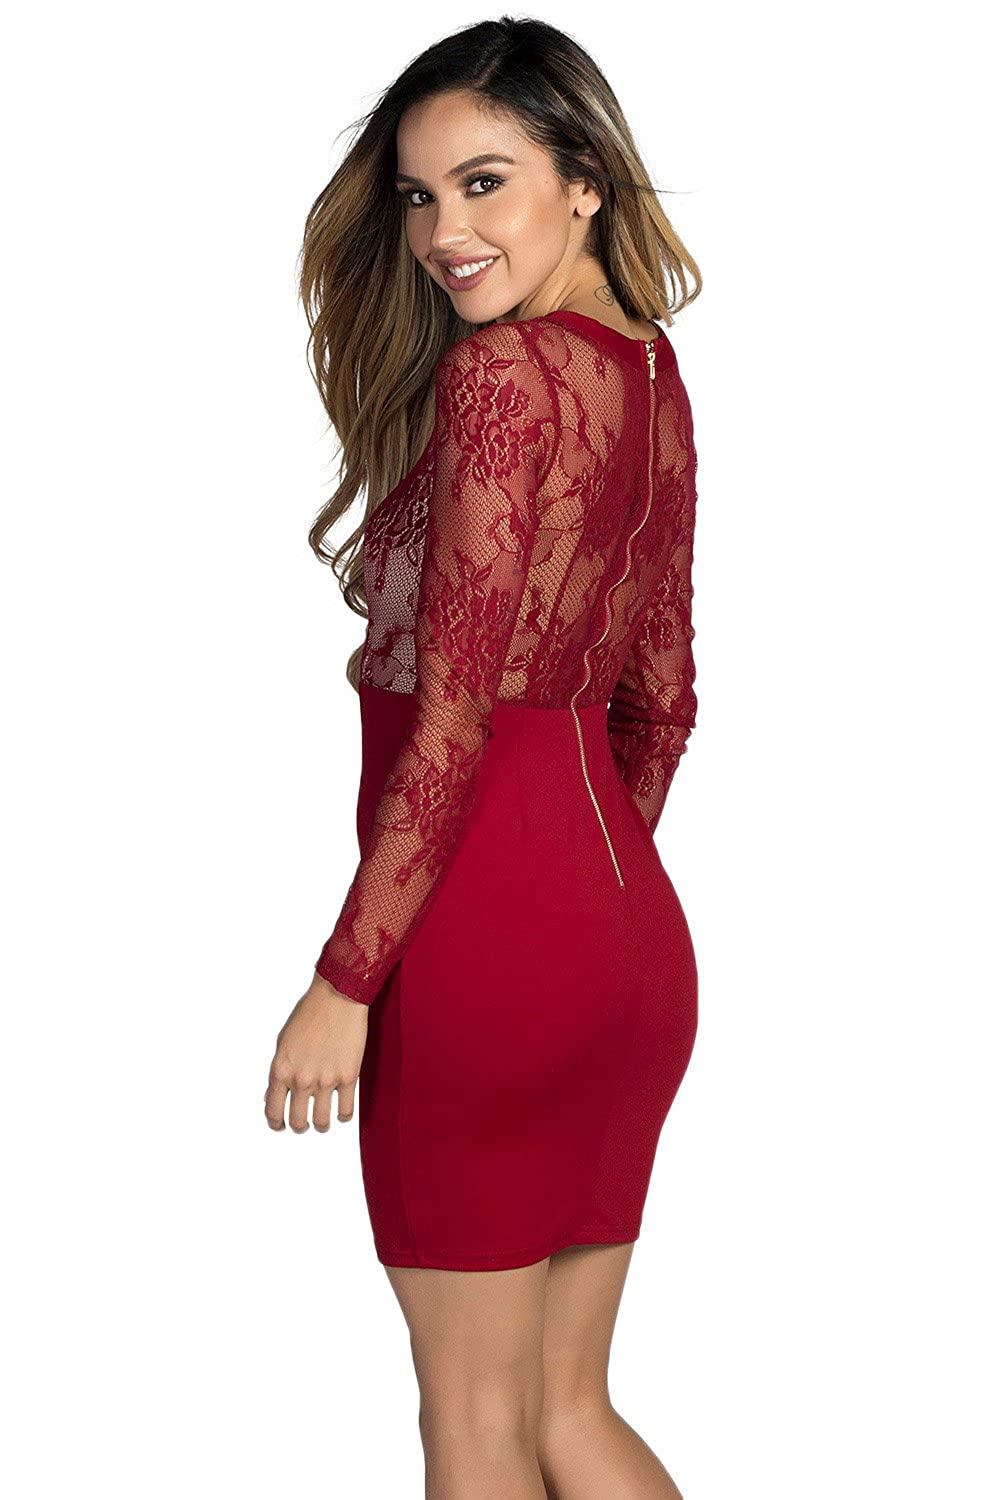 1c9c369dfd58 Babe Society Women's Burgundy Lace Long Sleeve Lace Up Bodycon Dress at Amazon  Women's Clothing store: